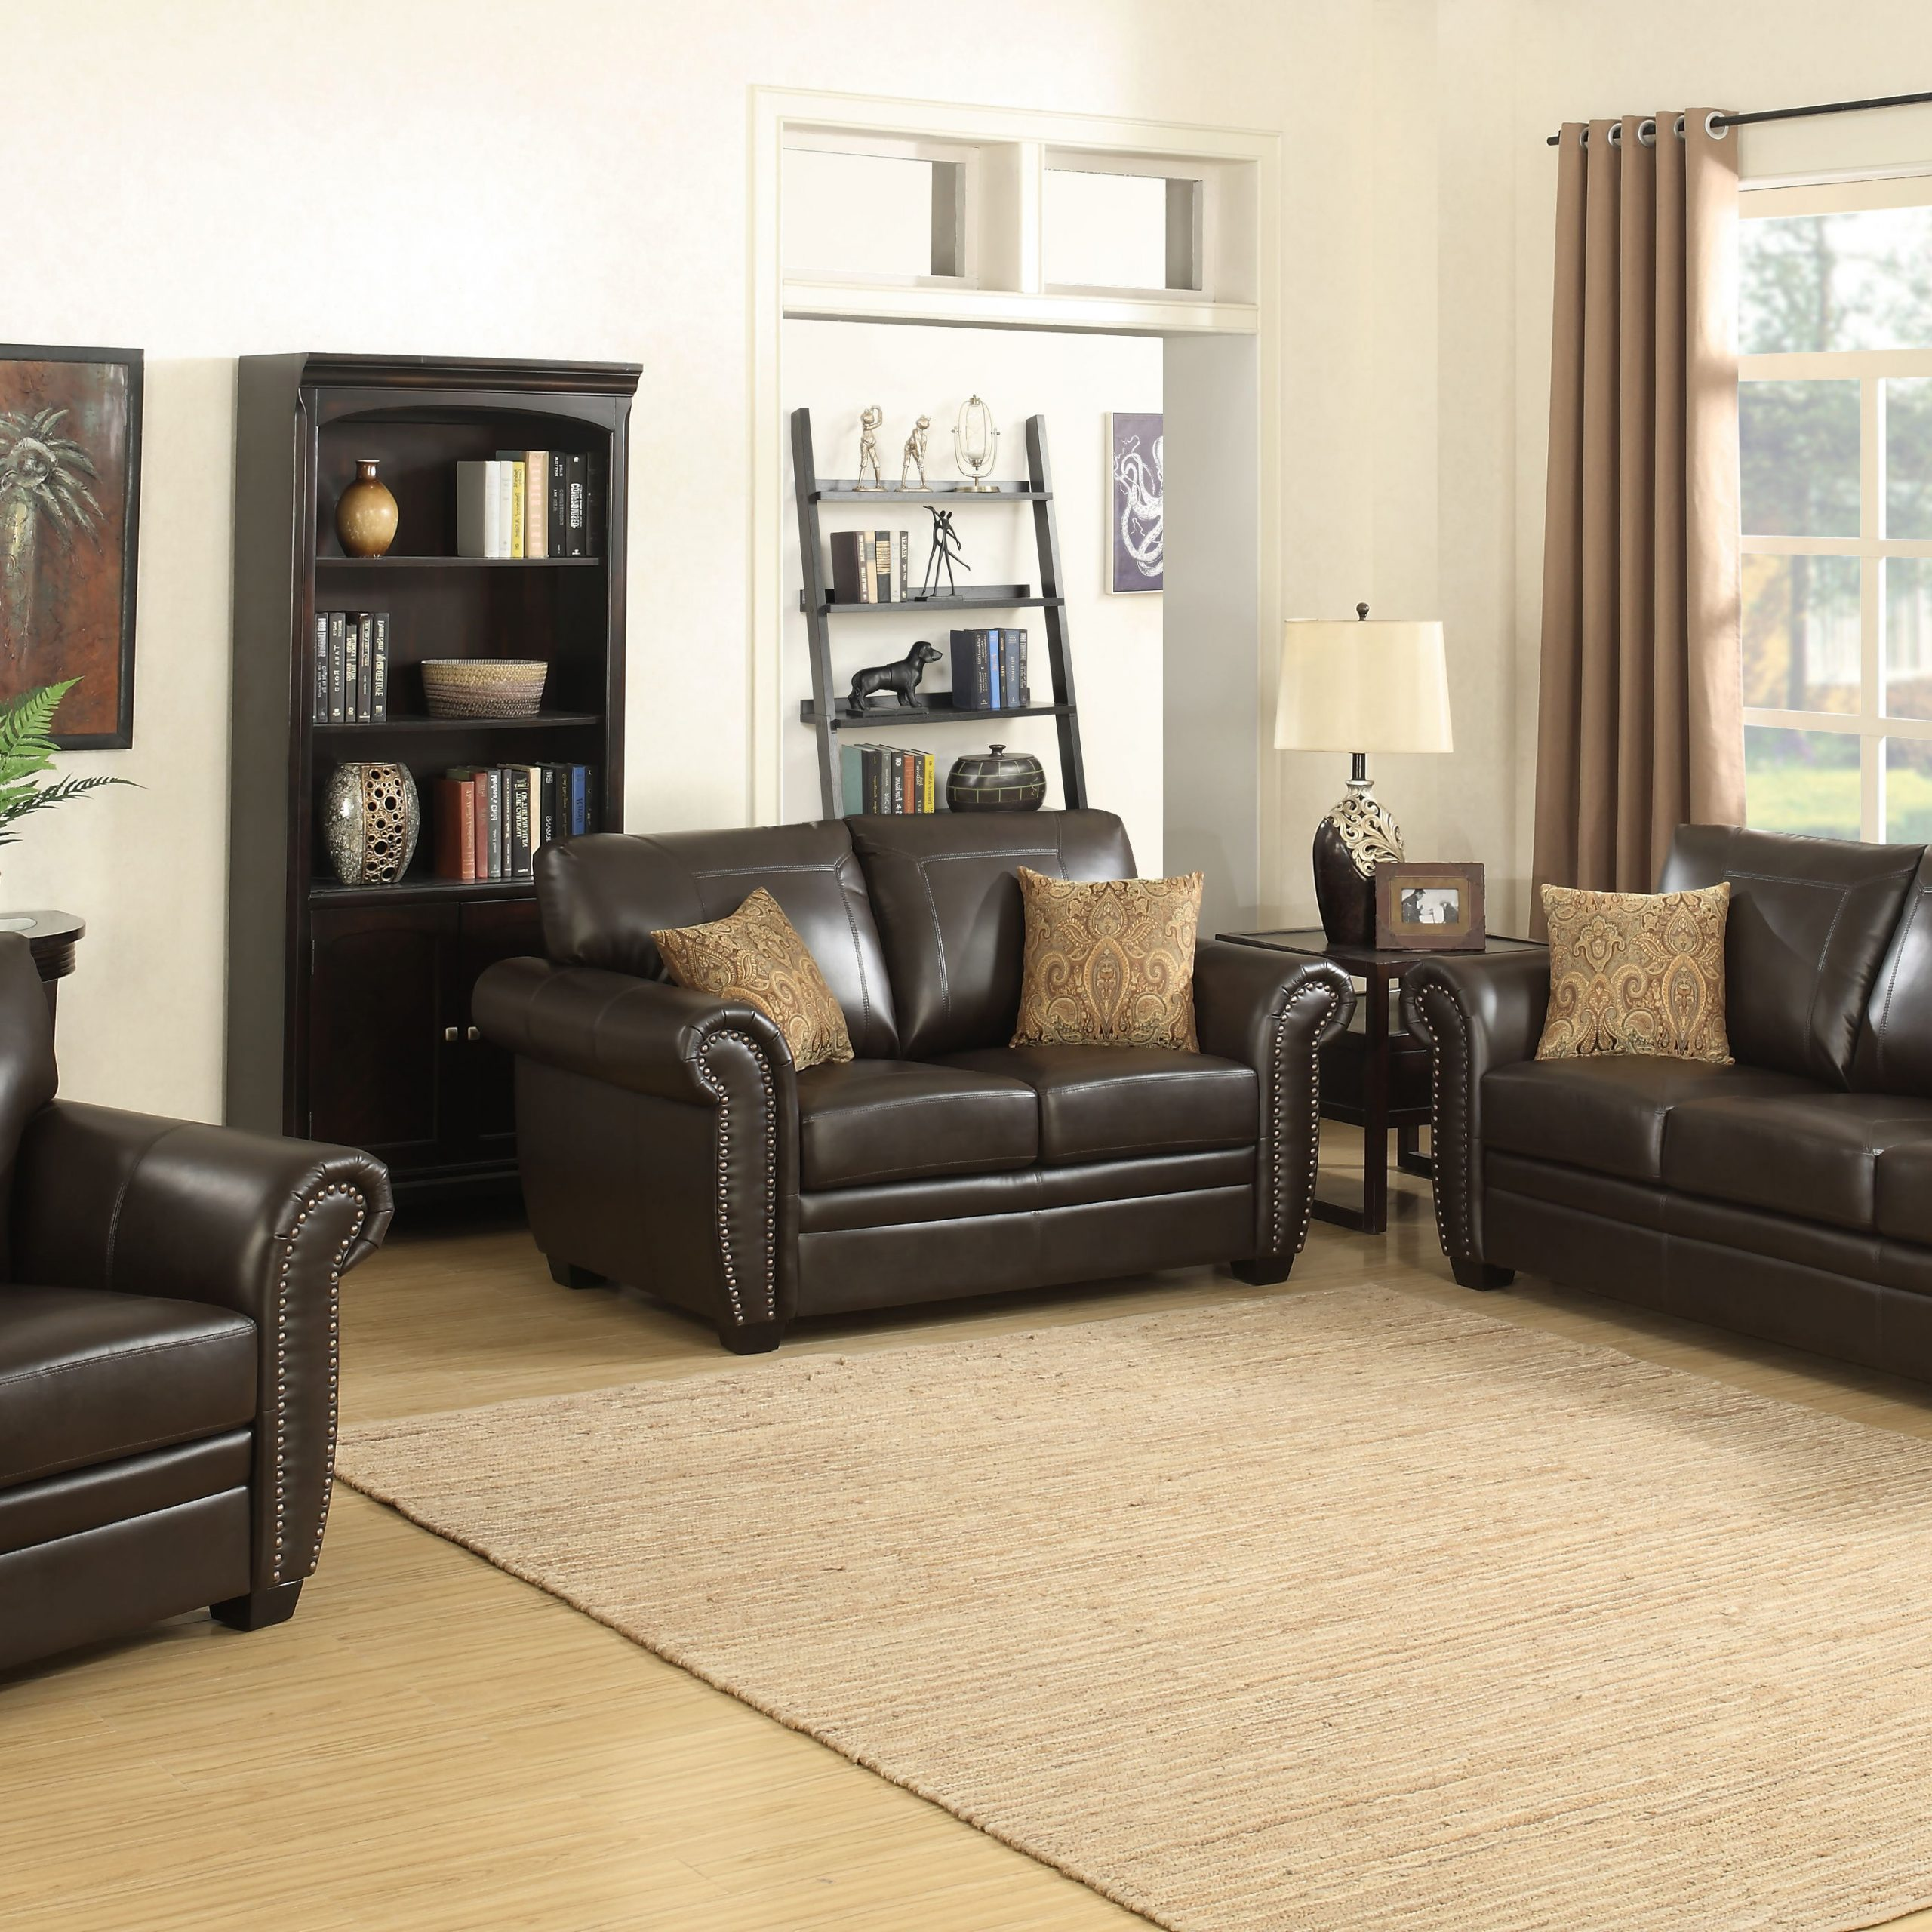 Fashionable 3Pc Faux Leather Sectional Sofas Brown In Louis Collection Traditional 3 Piece Upholstered Leather (View 25 of 25)